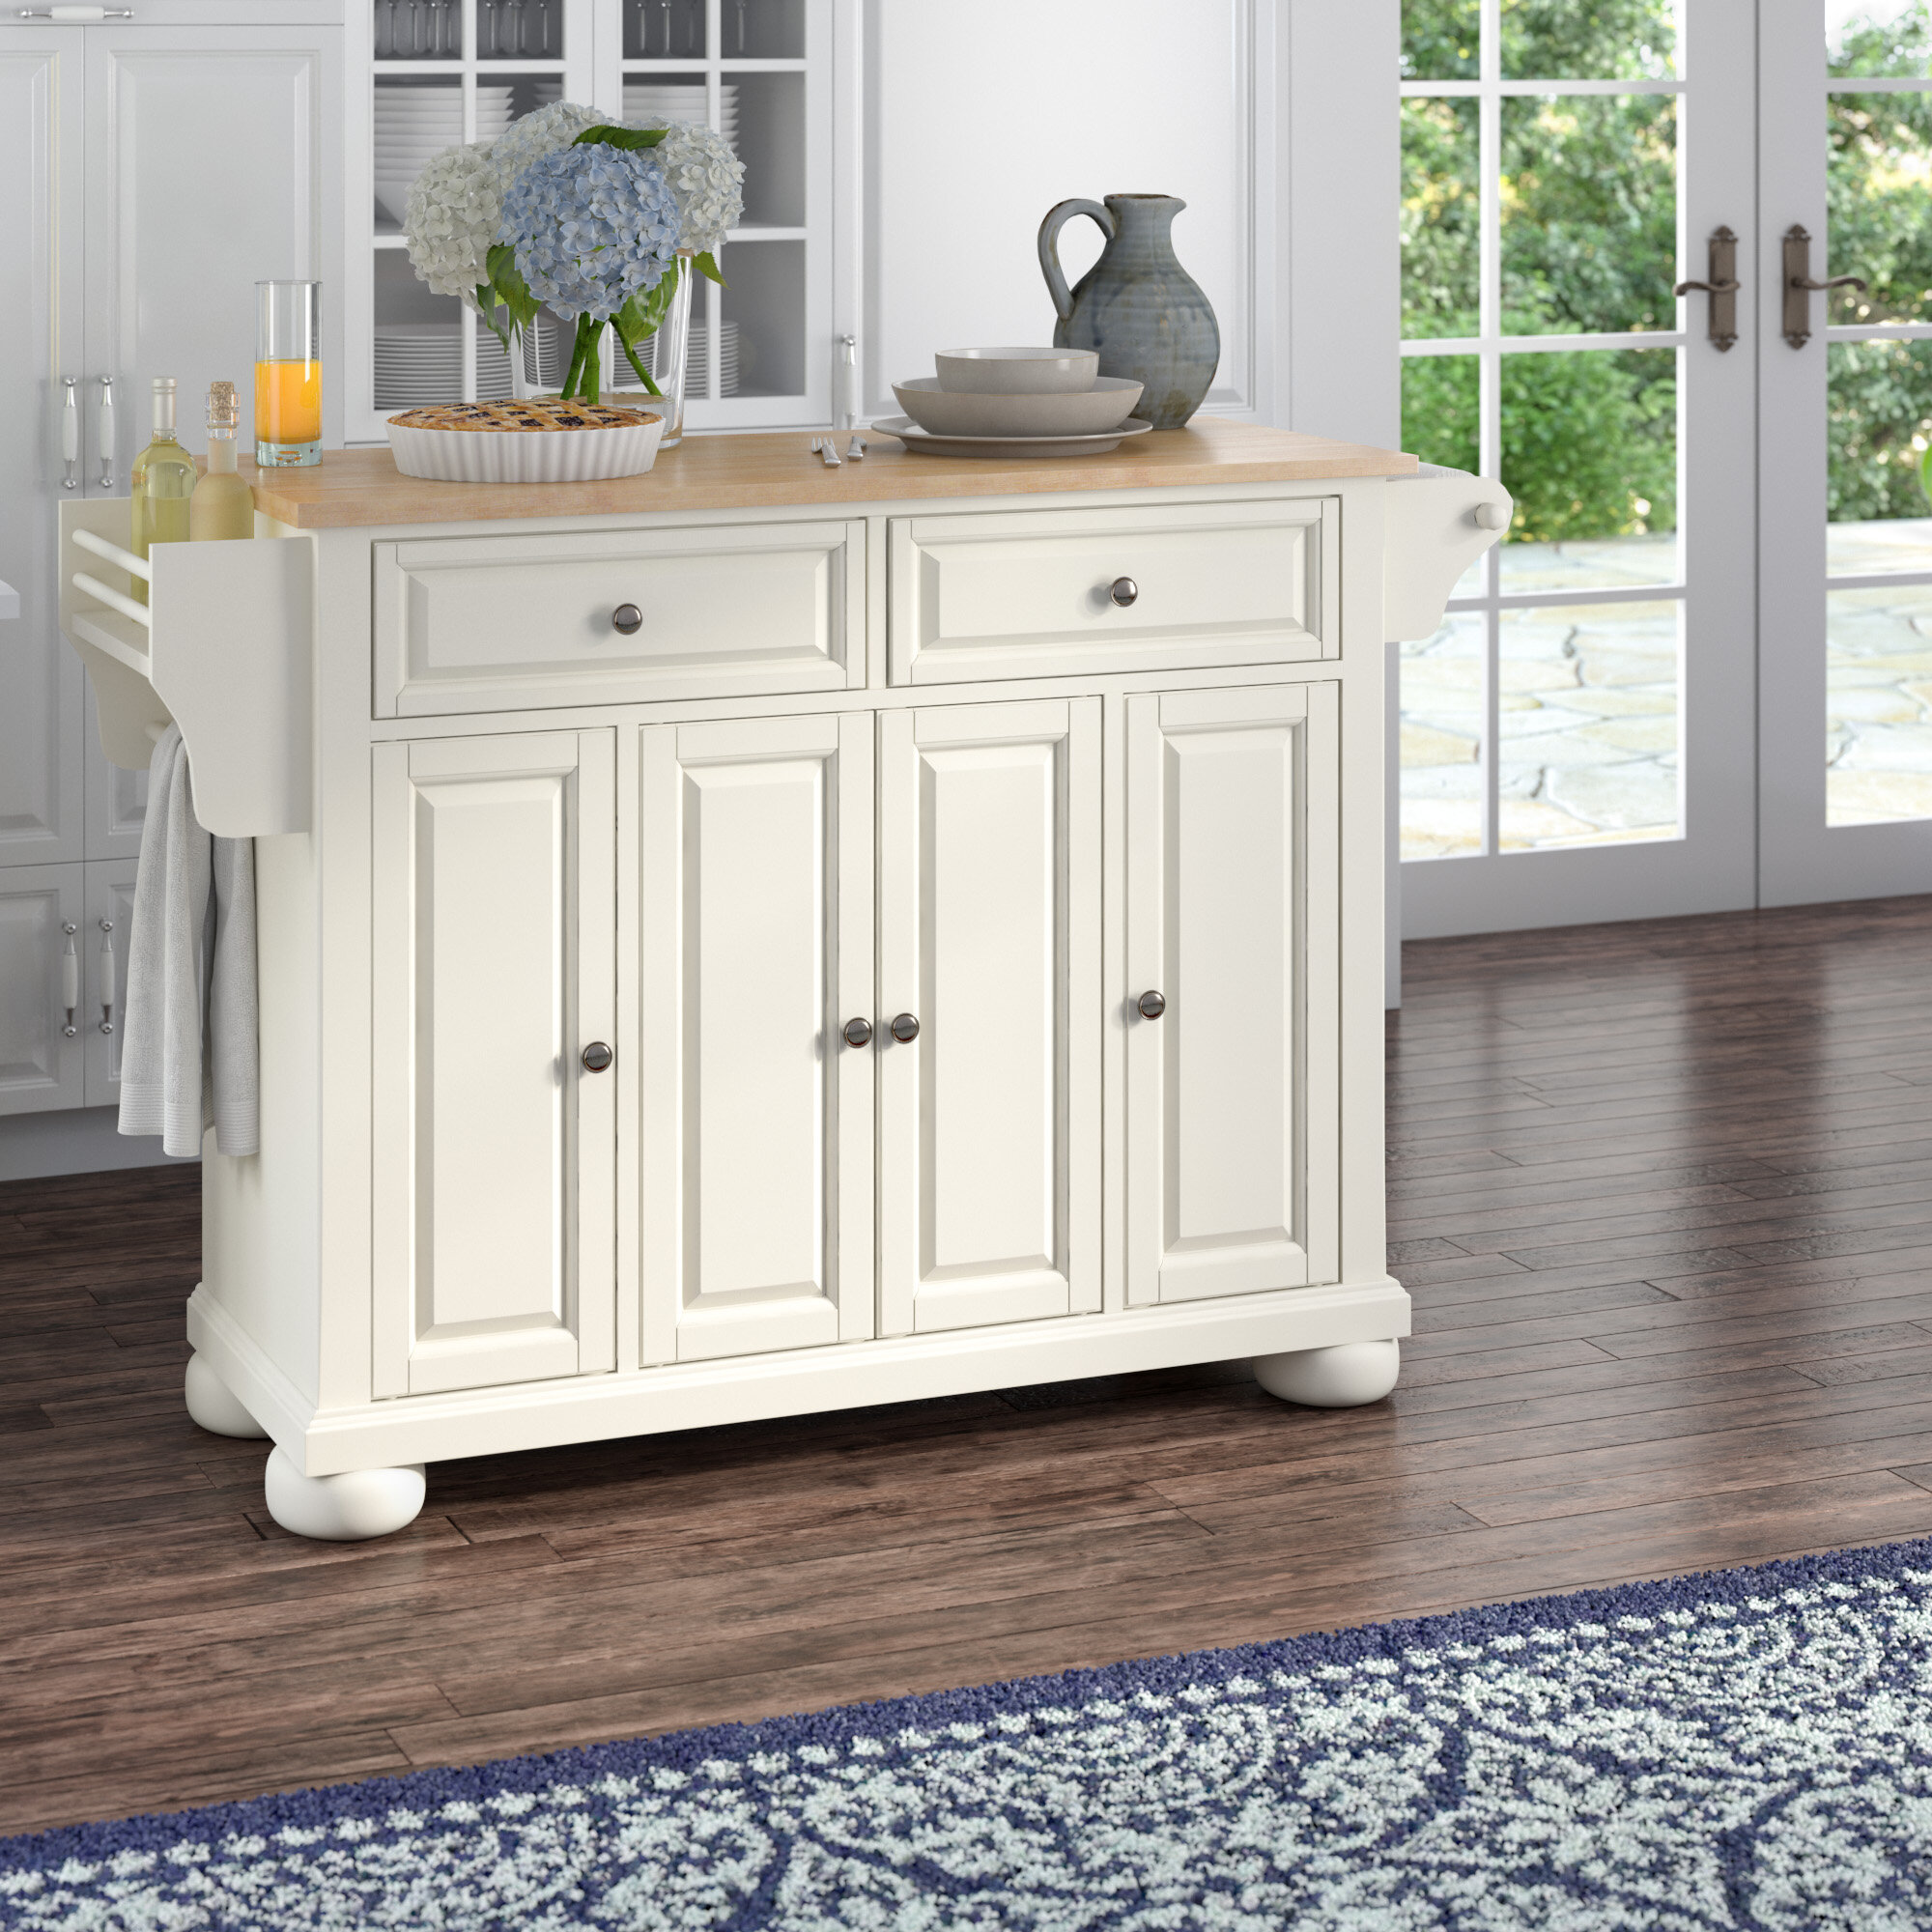 darby home co pottstown kitchen island with solid wood reviews wayfair - Kitchen Islands